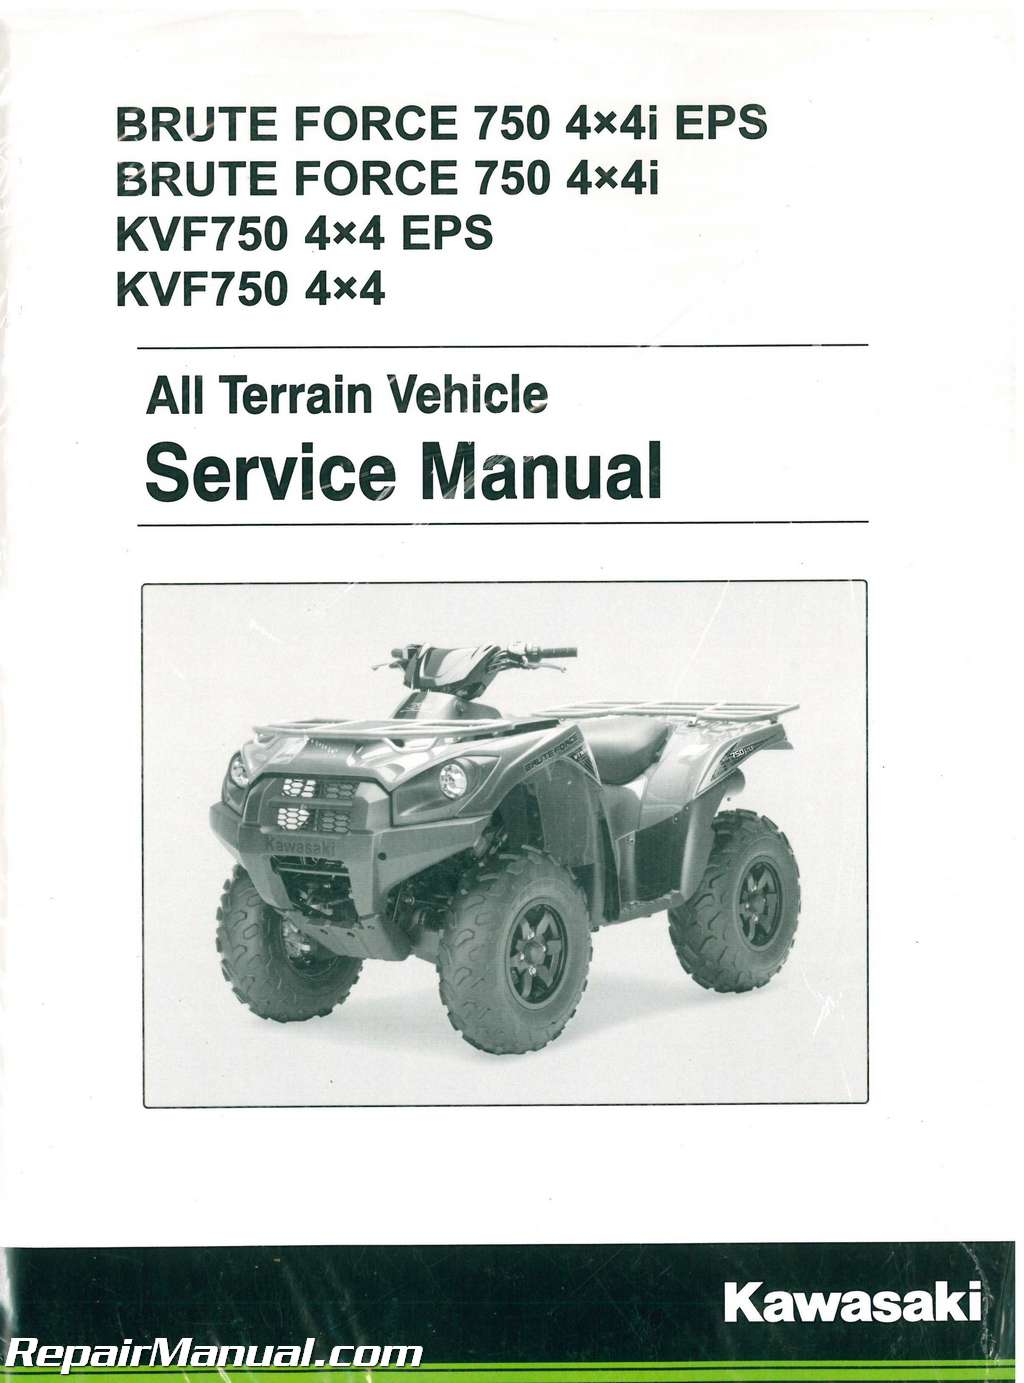 2012 2018 kawasaki brute force kvf750 4x4 4x4eps 4x4i 4x4i eps atv rh repairmanual com 2006 kawasaki 750 brute force service manual 2005 kawasaki 750 brute force owners manual